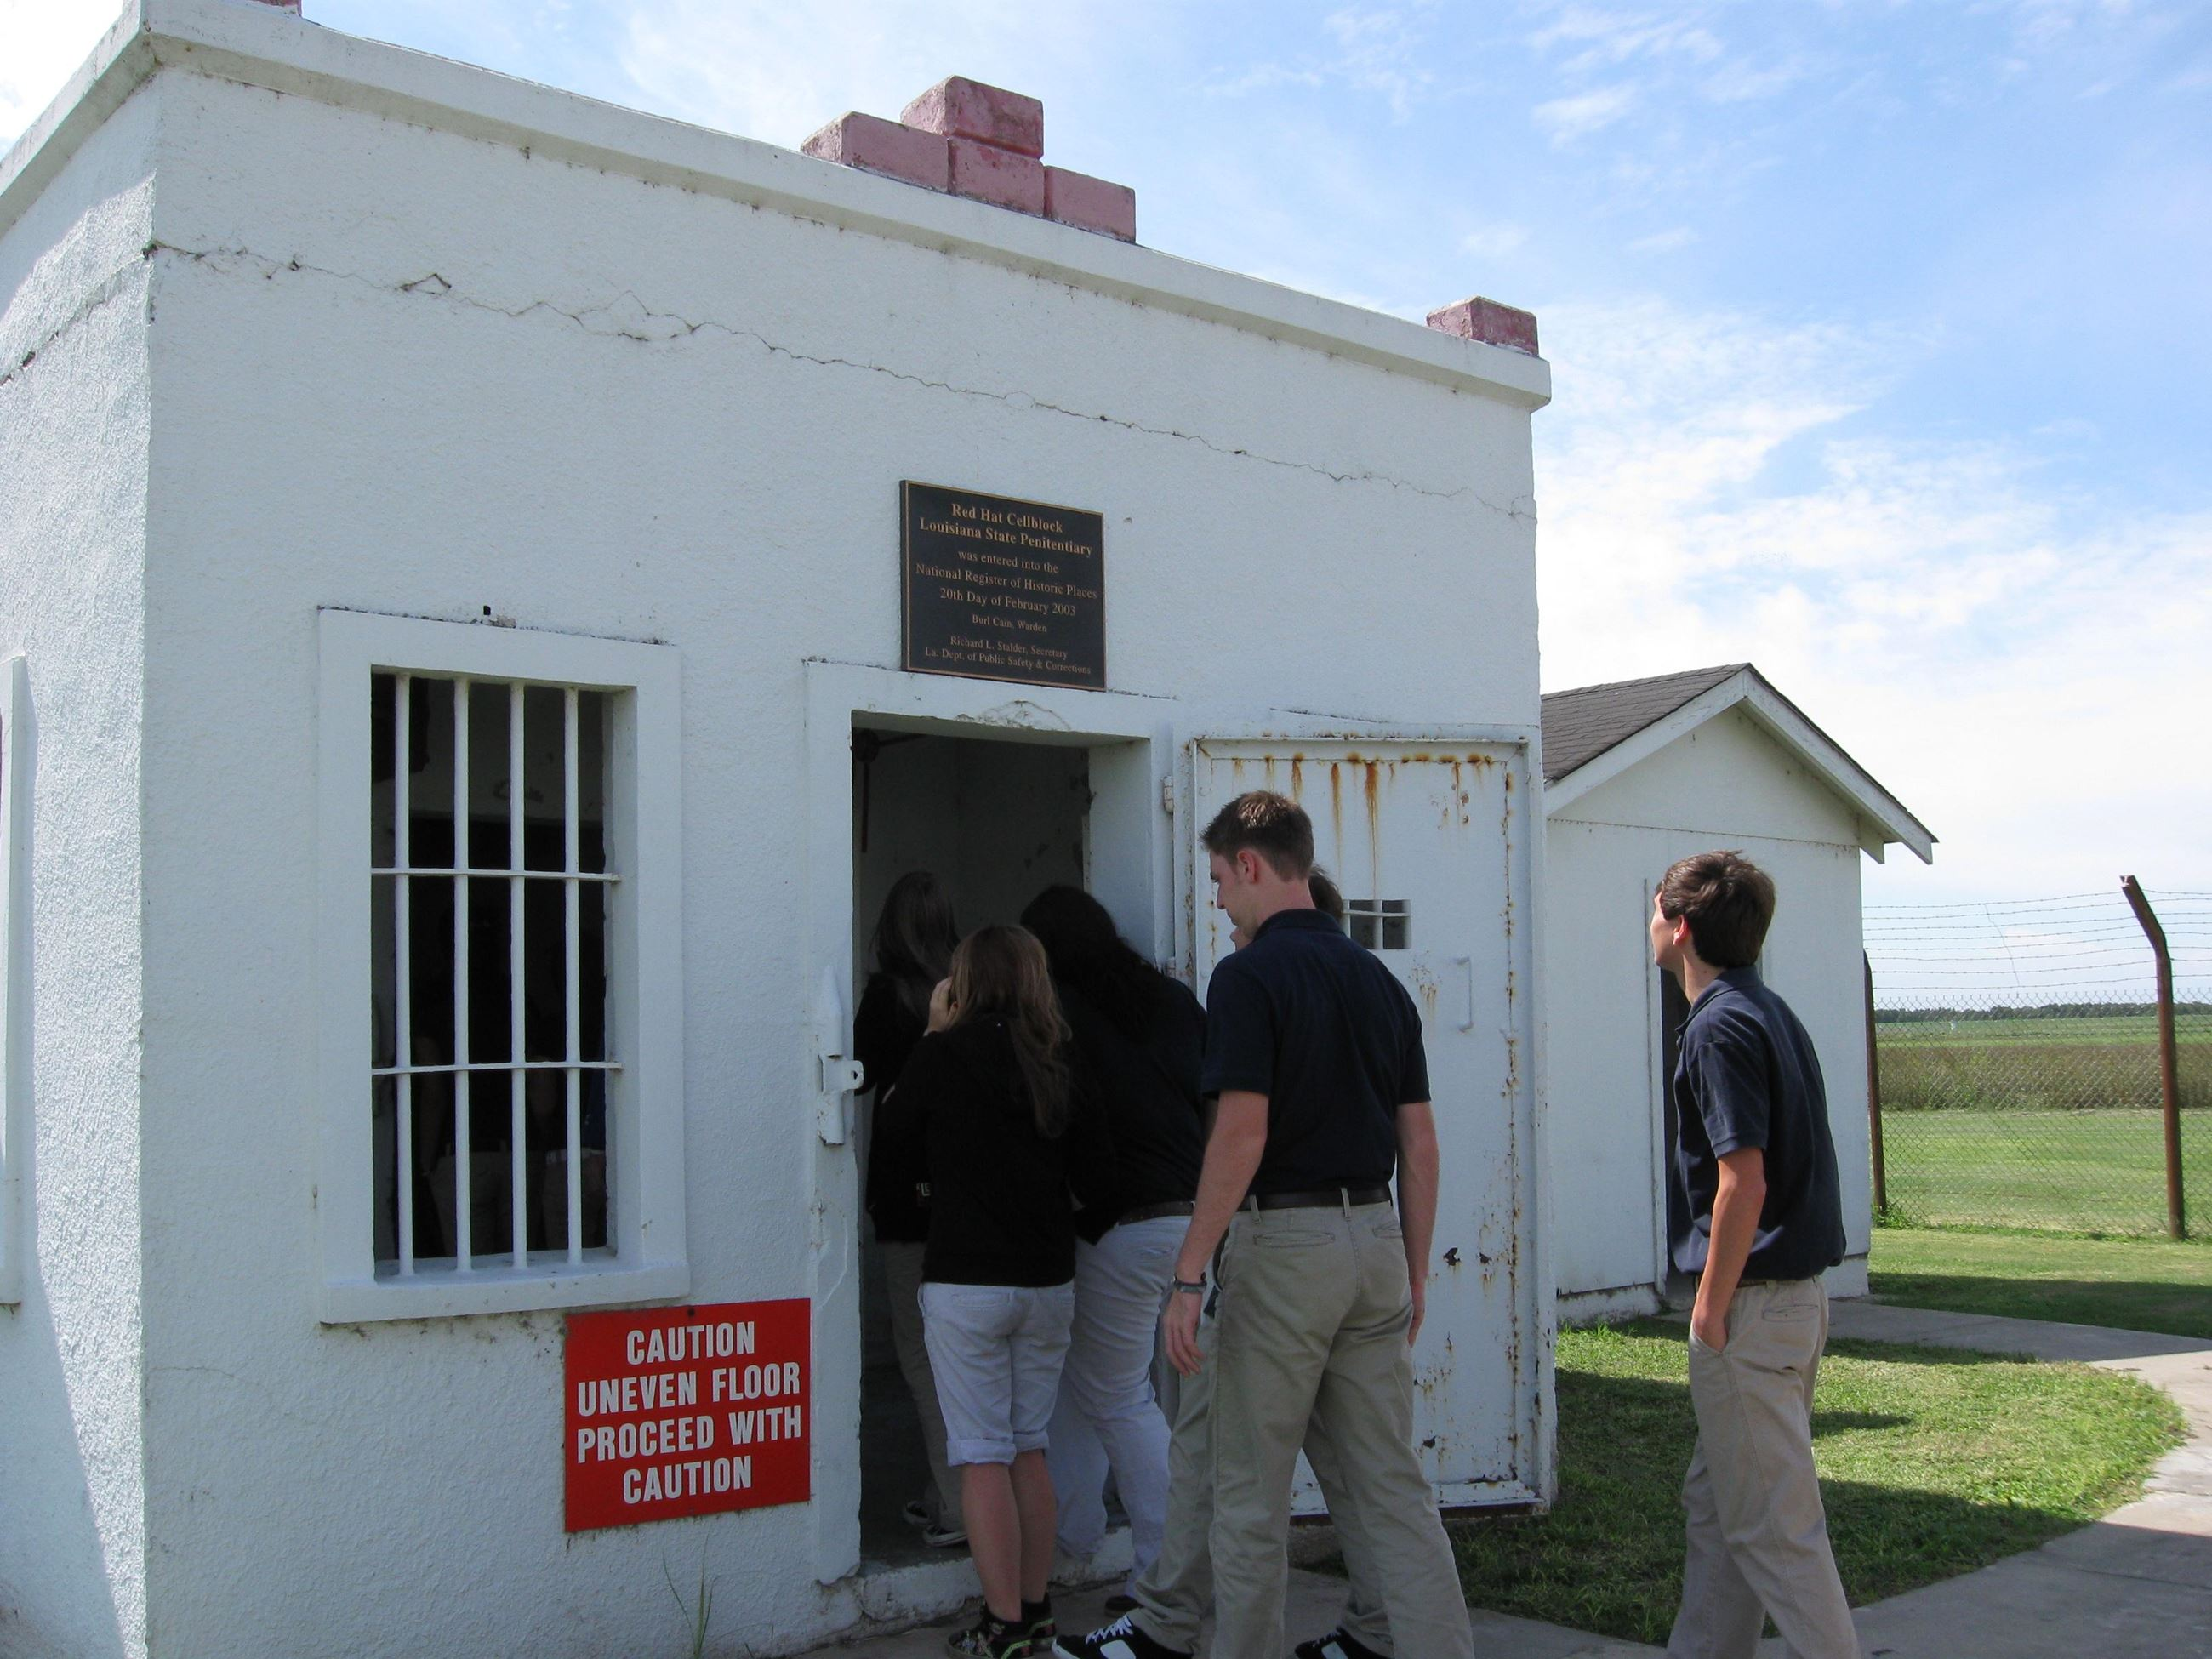 Students Entering a Small Building